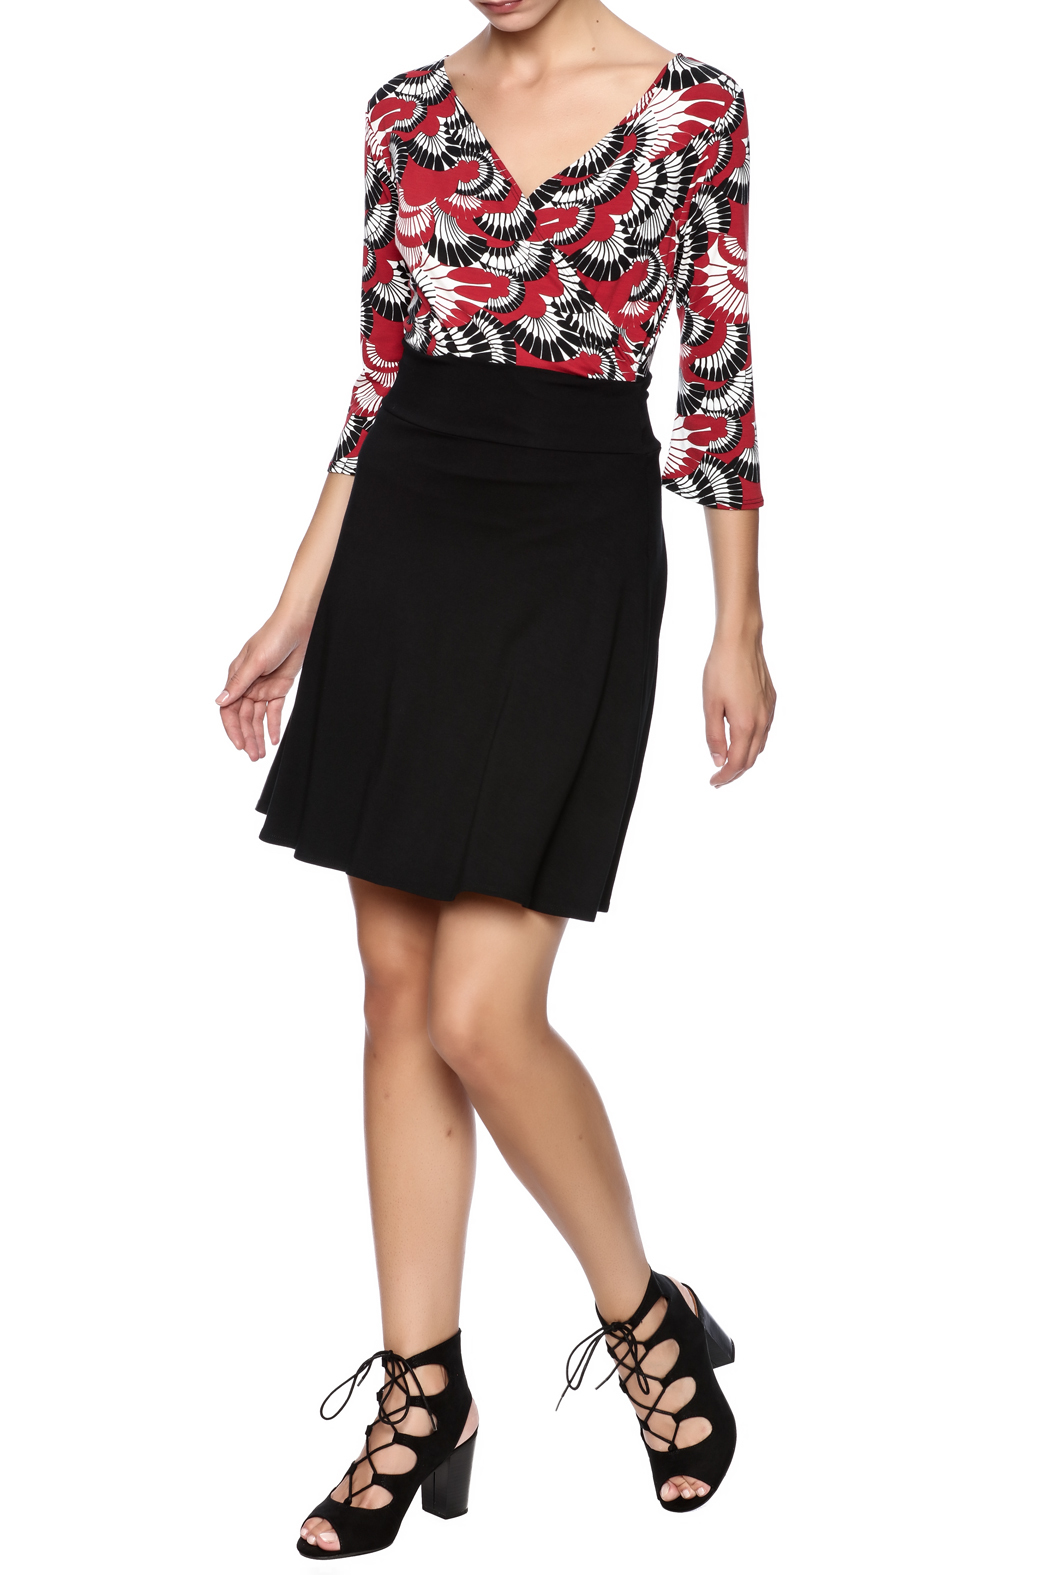 salaam Black Short Flippy Skirt - Front Full Image